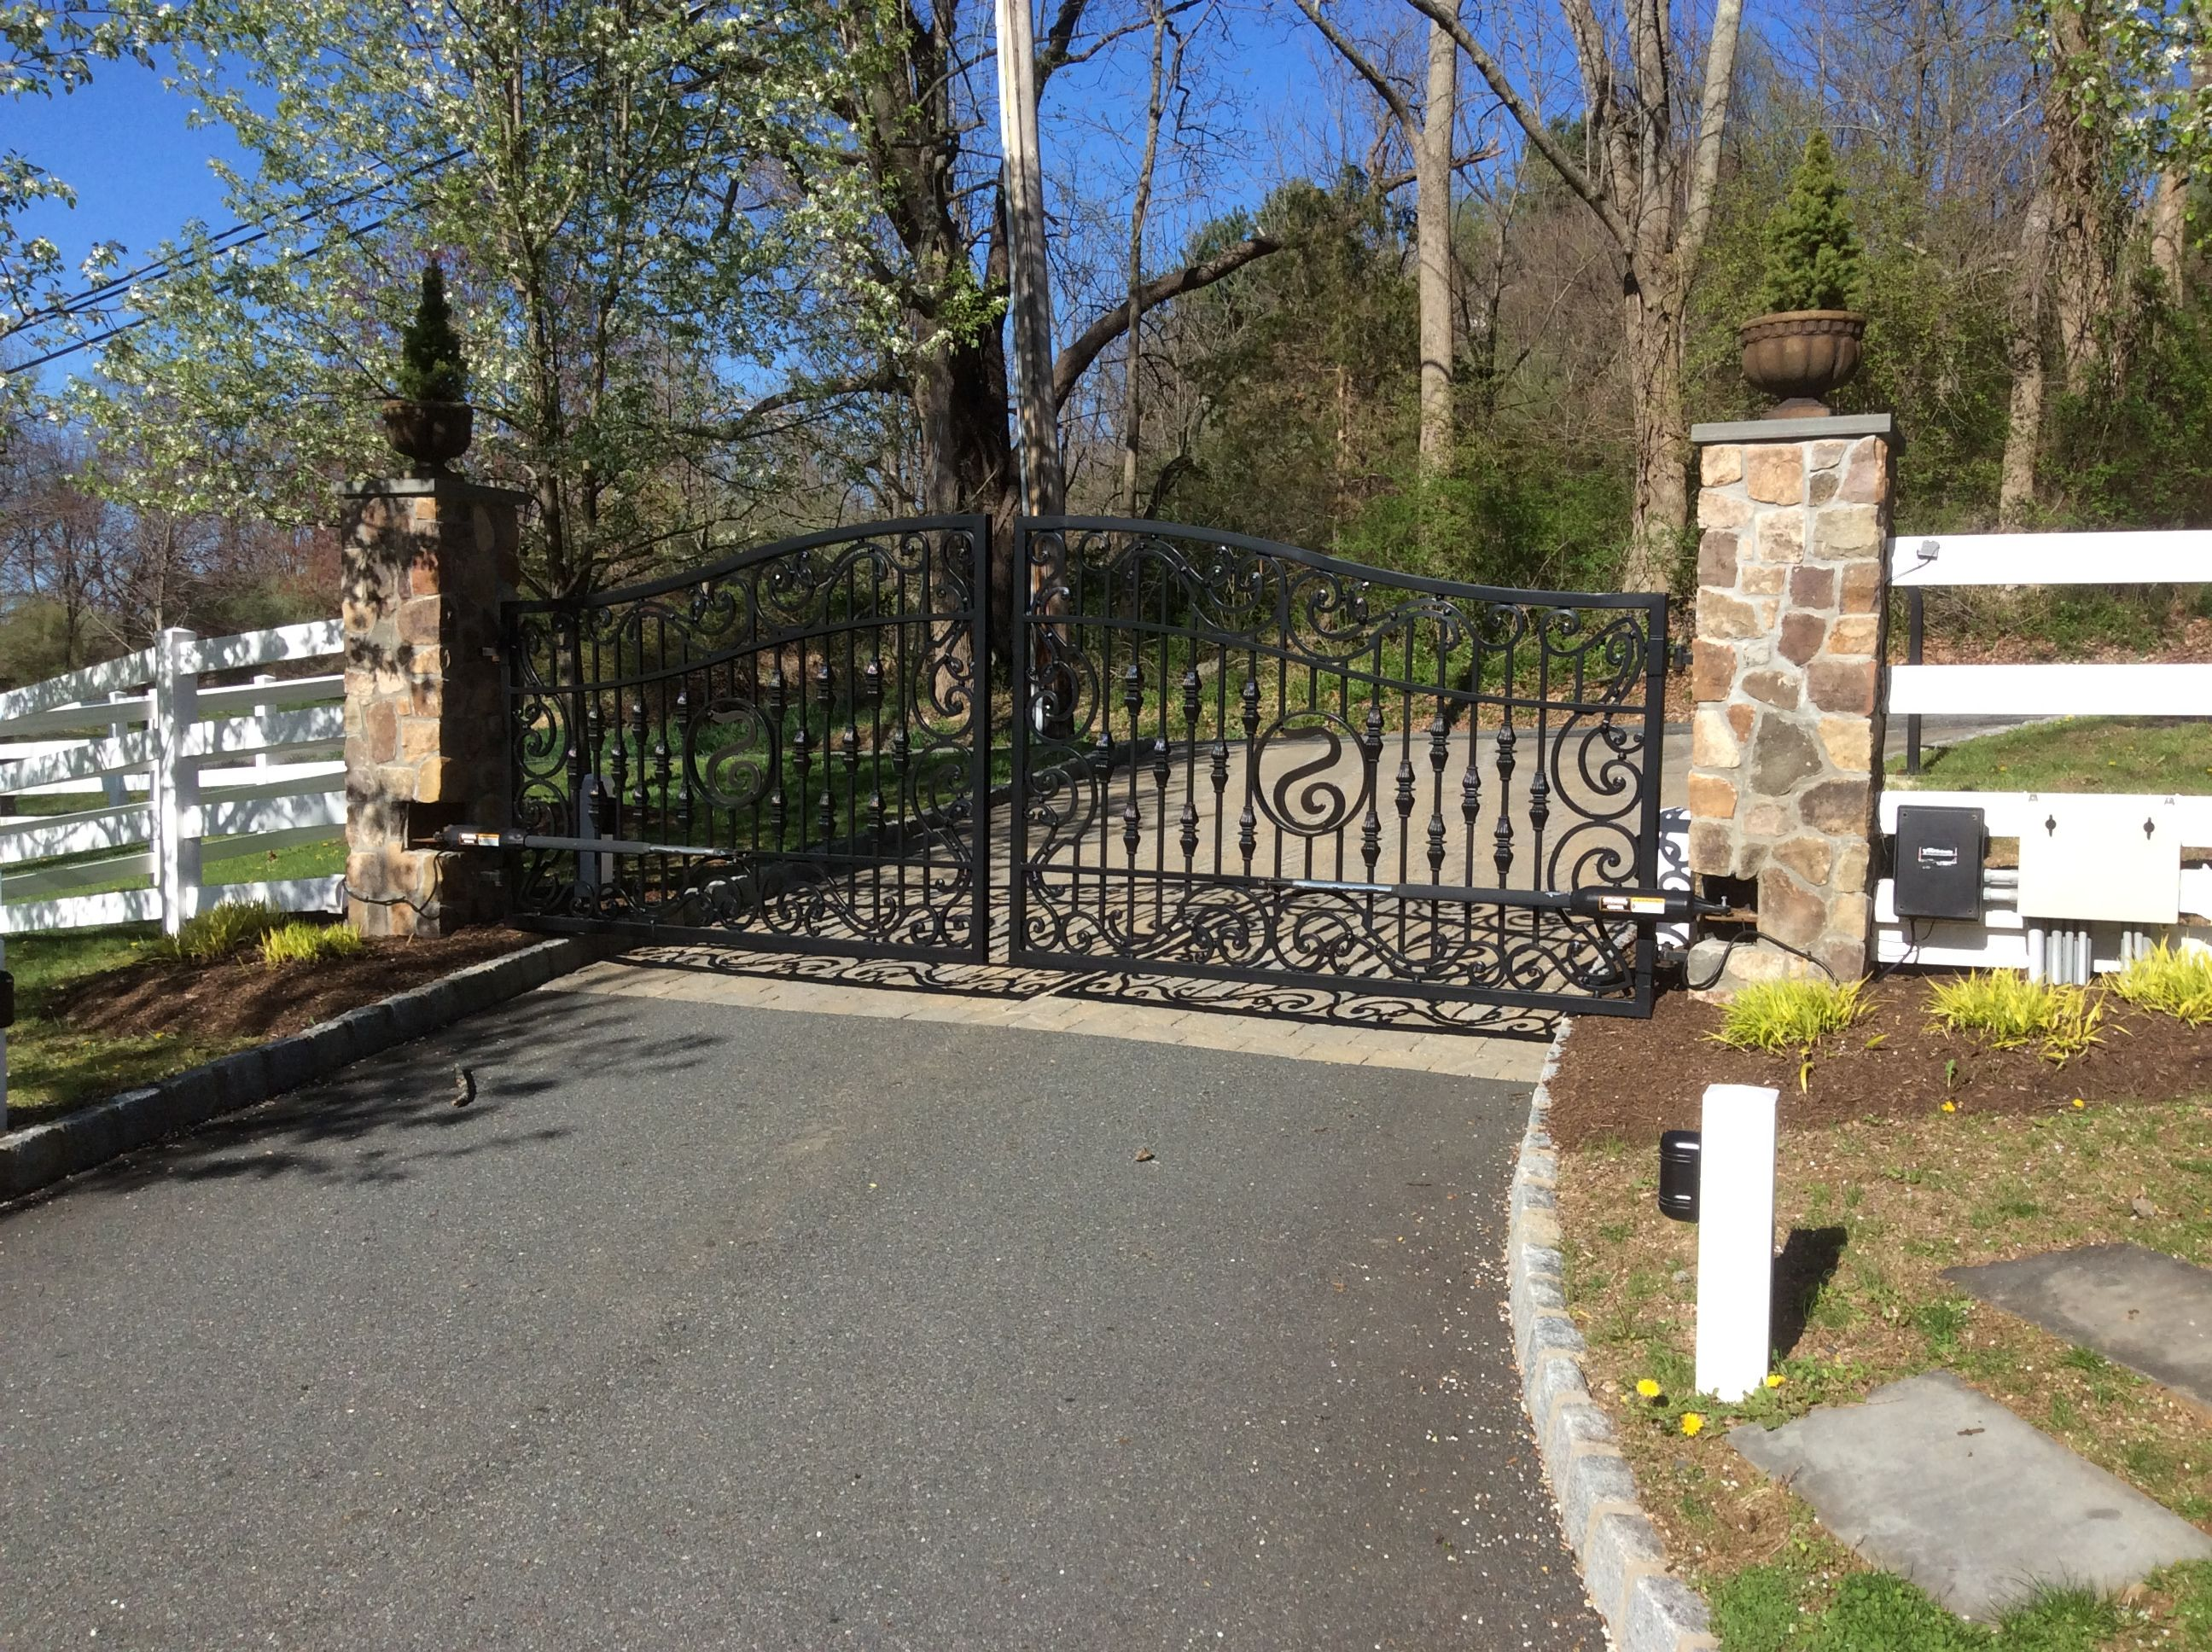 Sophisticated iron driveway gates with stone pillars